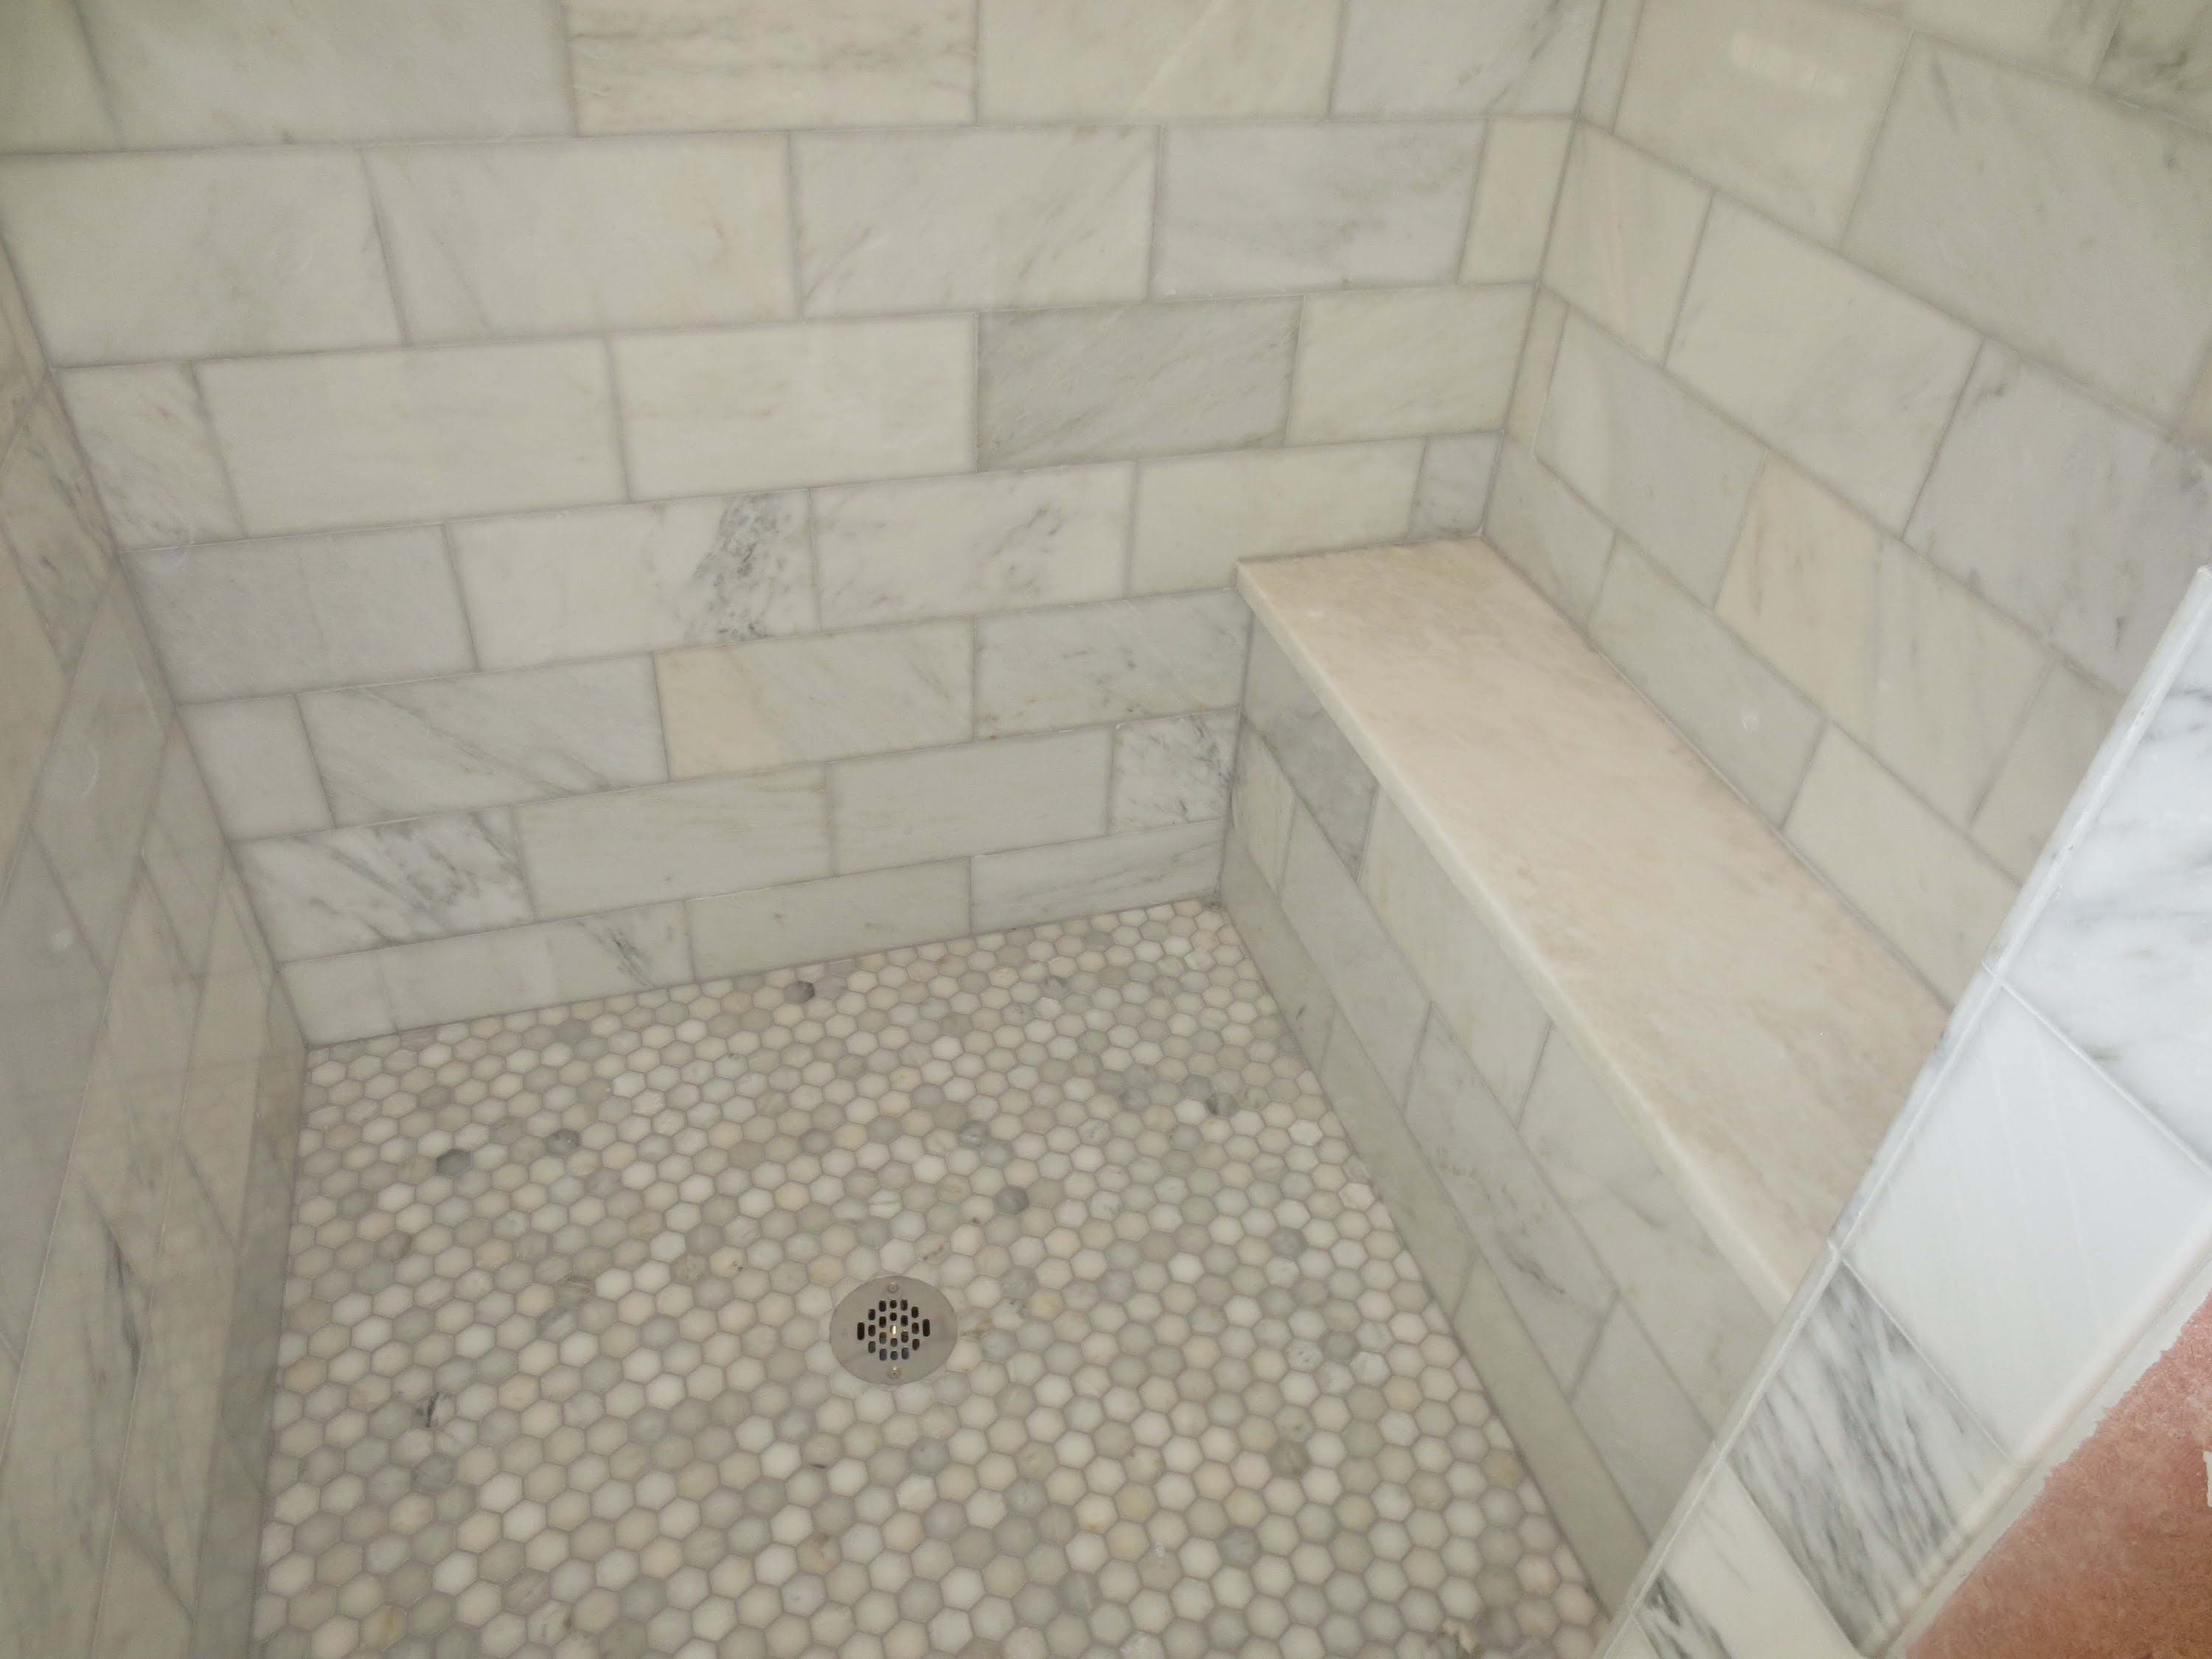 High Quality Marble Master Bathroom Time Lapse Of The Installation Of A Shower Stall And  Bathroom Floor On